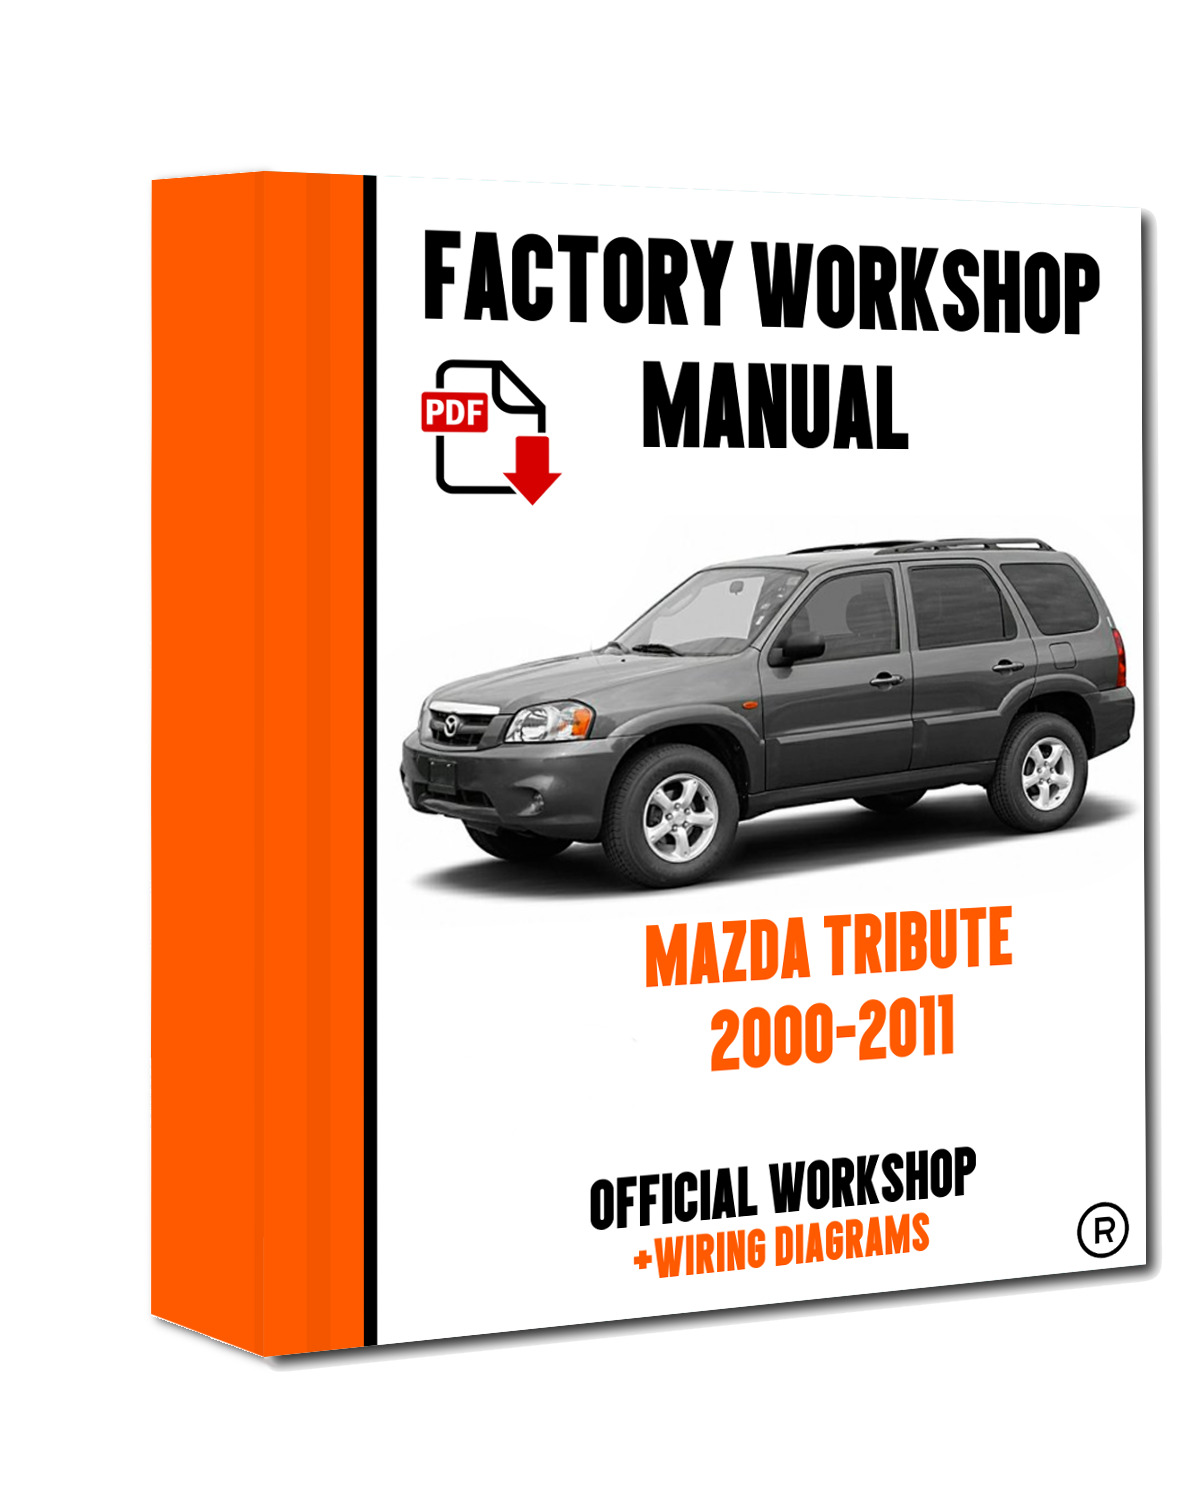 Official Workshop Manual Service Repair Mazda Tribute 2000 2011 Exhaust System Diagram On 2001 Engine Like Us Facebook 1 Of 5free Shipping See More